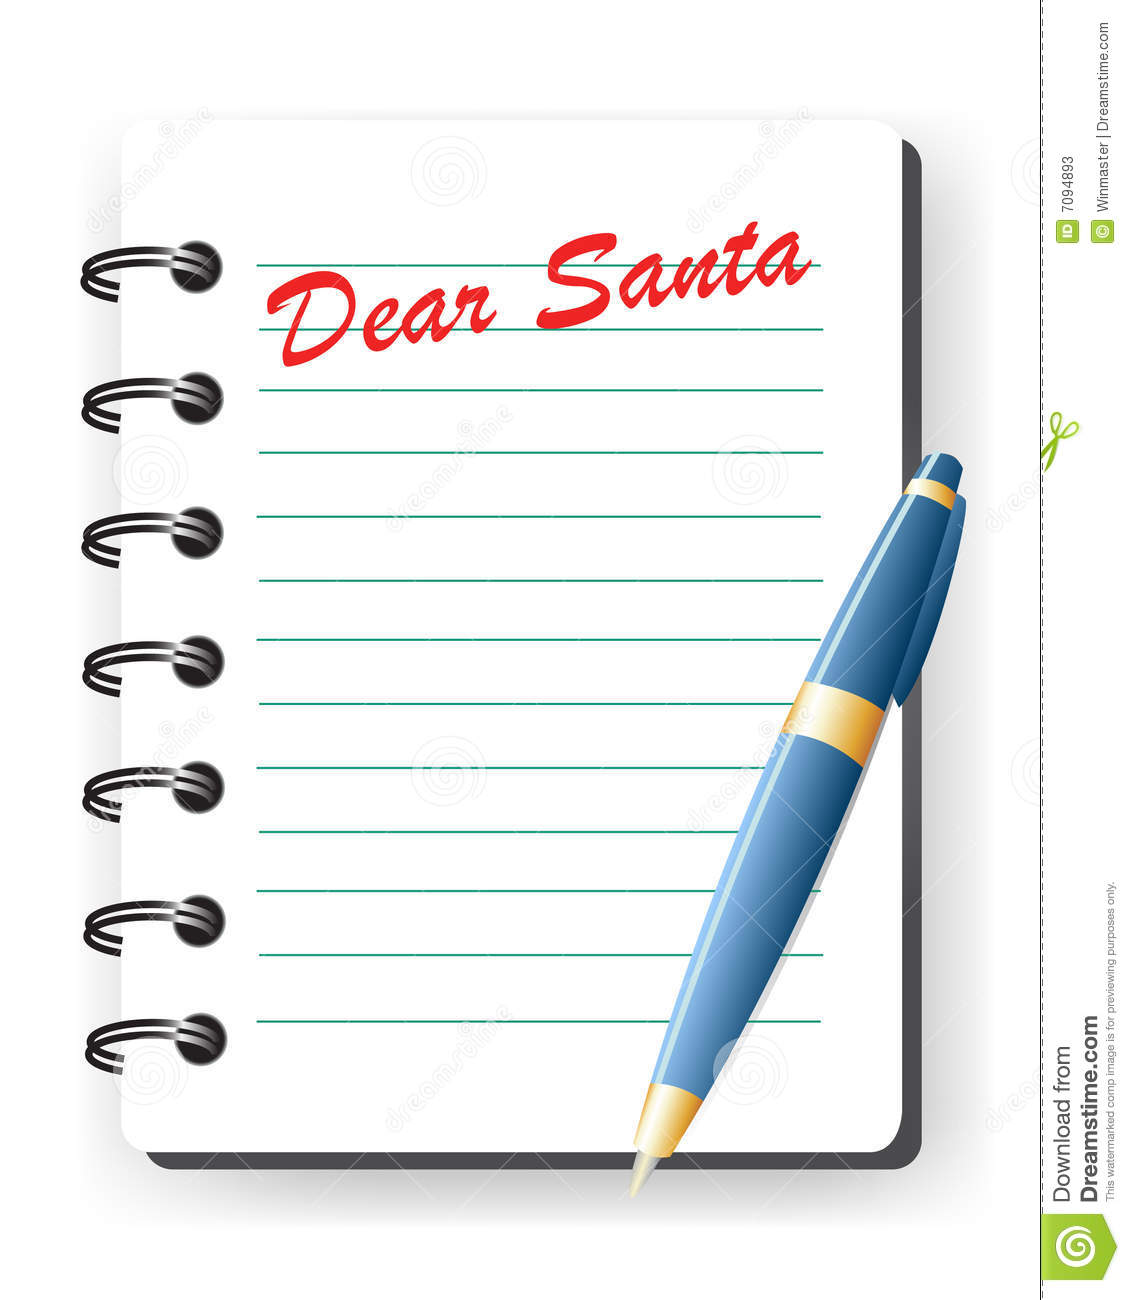 Dear Santa Letter Stock Vector Illustration Of Present